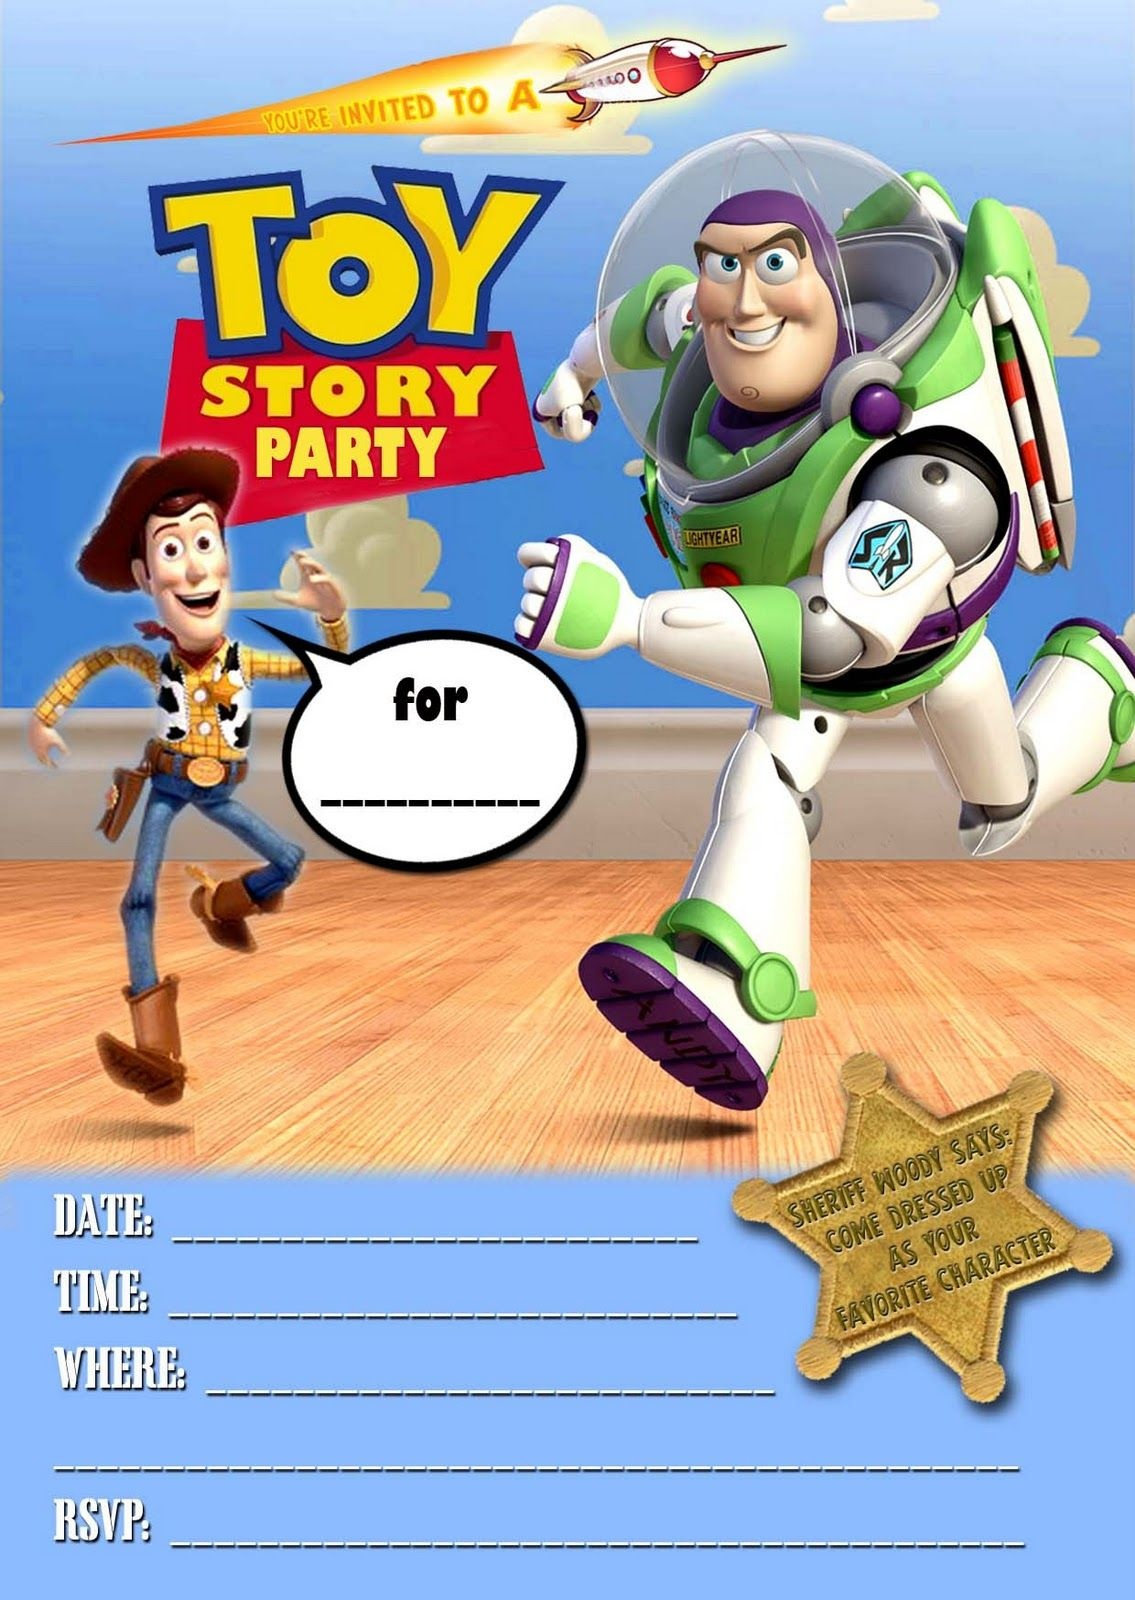 Free Kids Party Invitations: Toy Story Party Invitation *new - Toy Story Birthday Card Printable Free